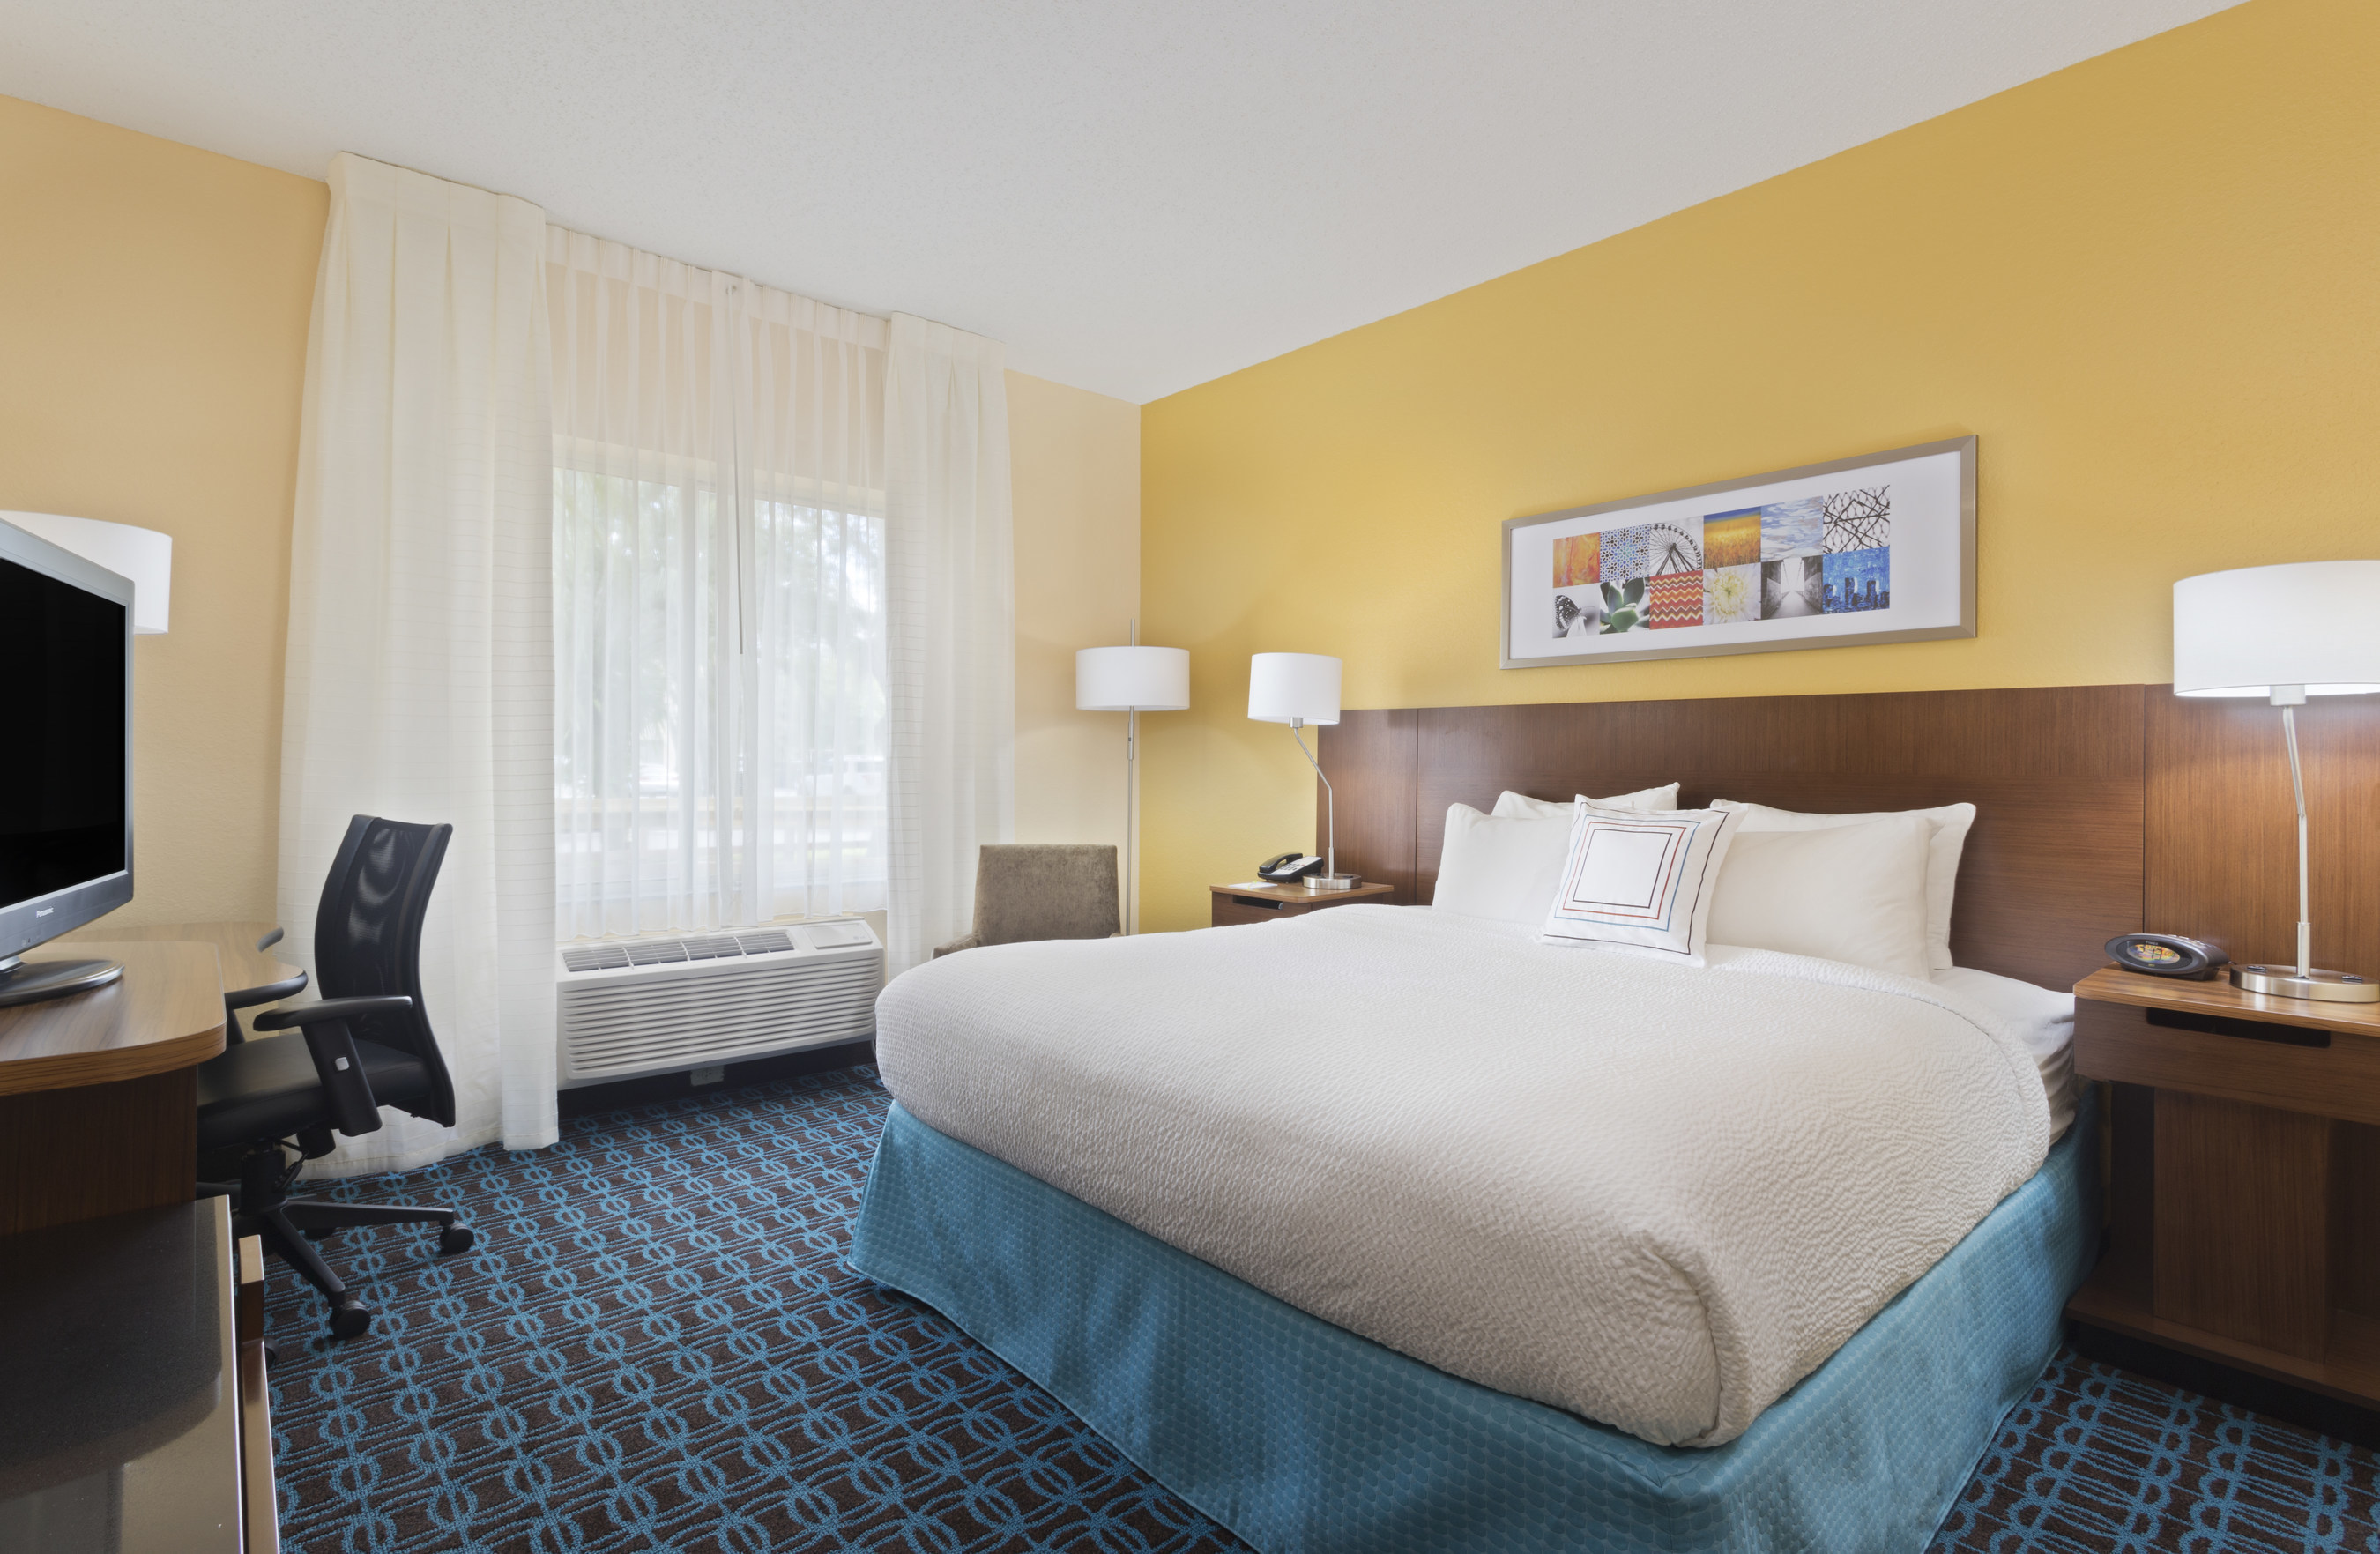 Fairfield inn and suites by marriott tampa brandon unveils for Room decor jeneration